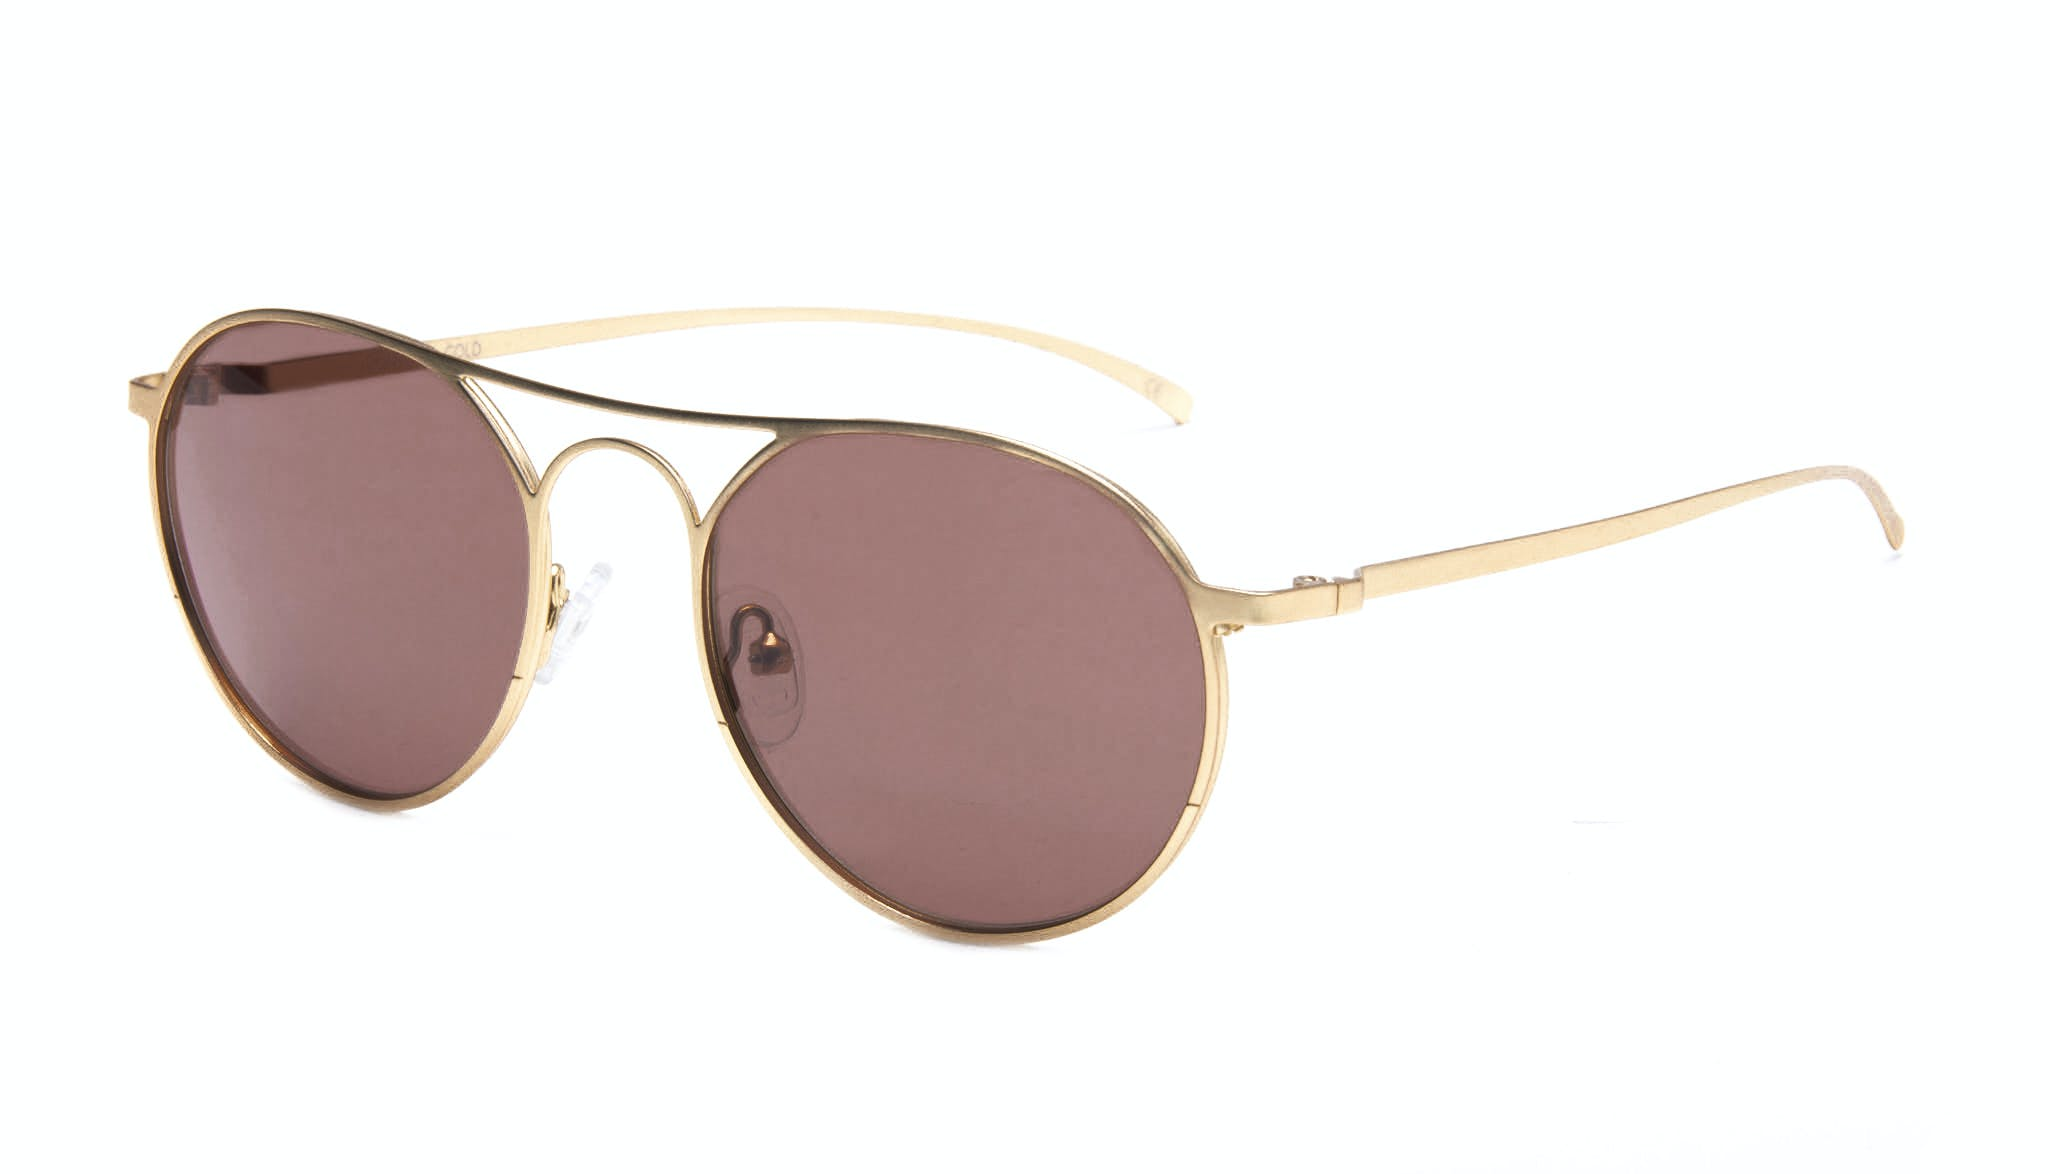 Affordable Fashion Glasses Aviator Round Sunglasses Men Contour Gold Tilt